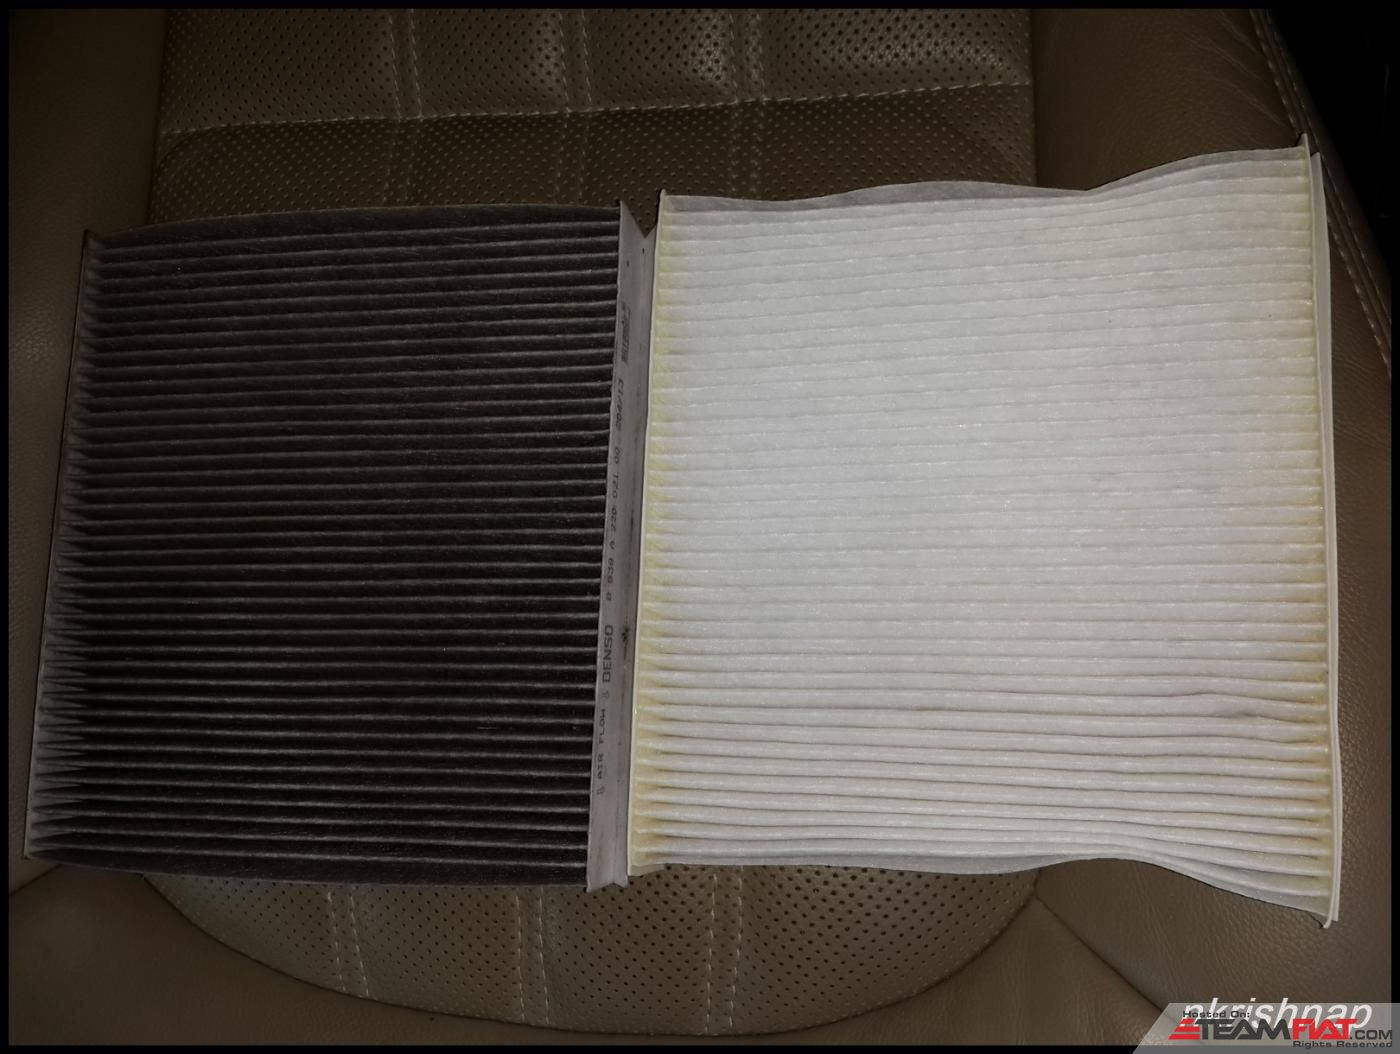 AC Filter Old vs New.jpg